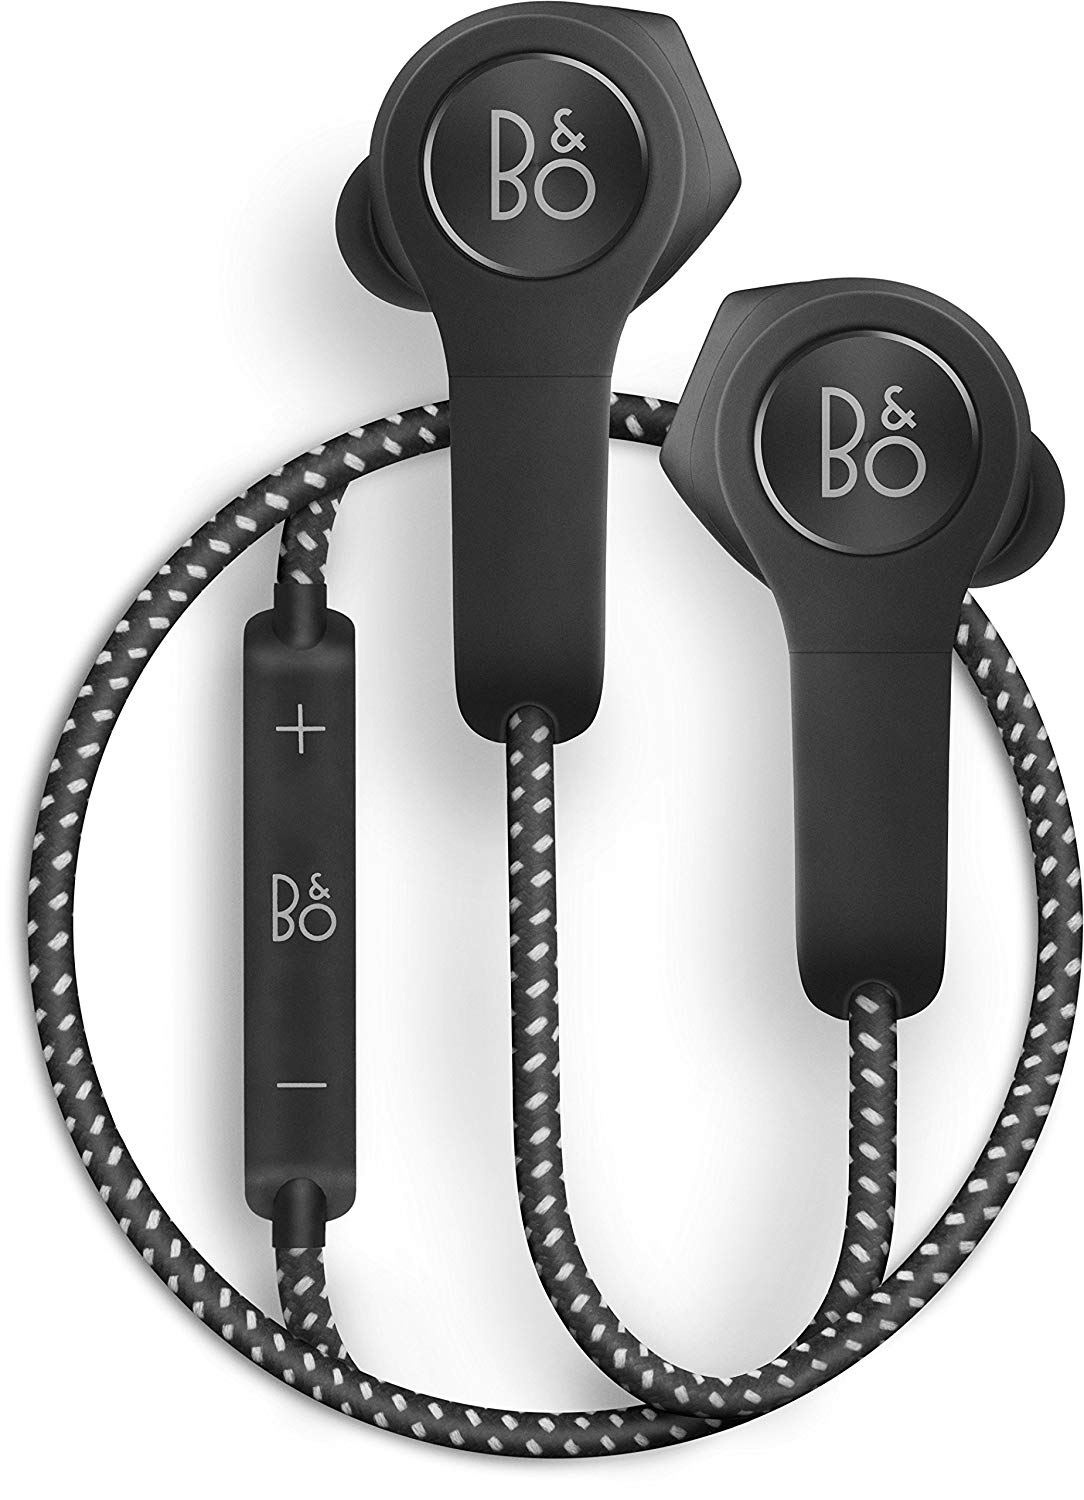 Bang & Olufsen Beoplay H5 Wireless Bluetooth Earbuds